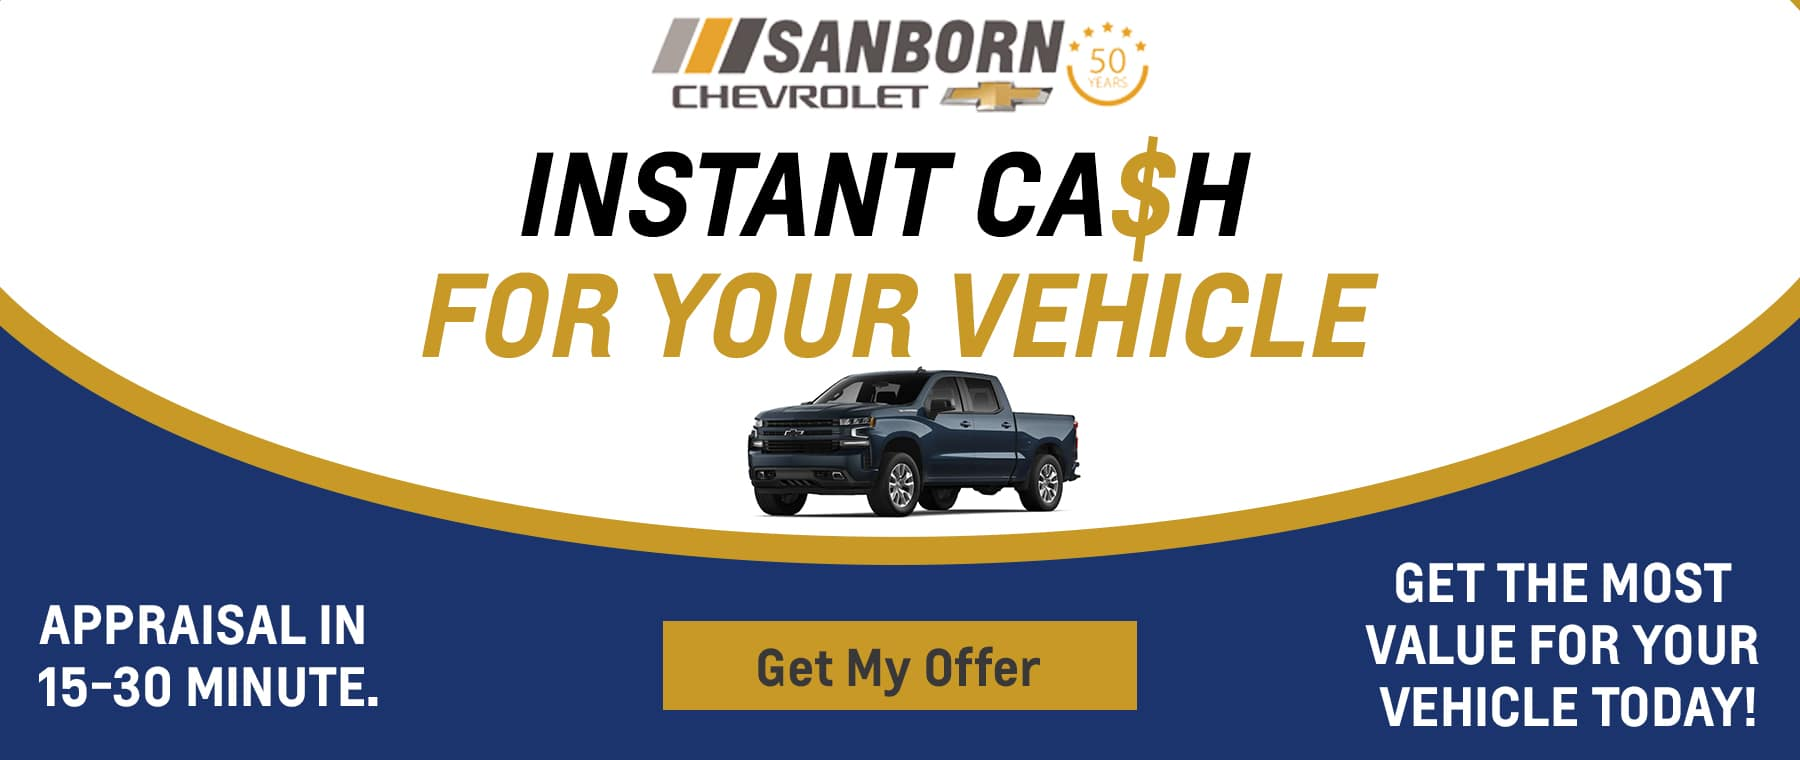 Instant Cash for Your Vehicle